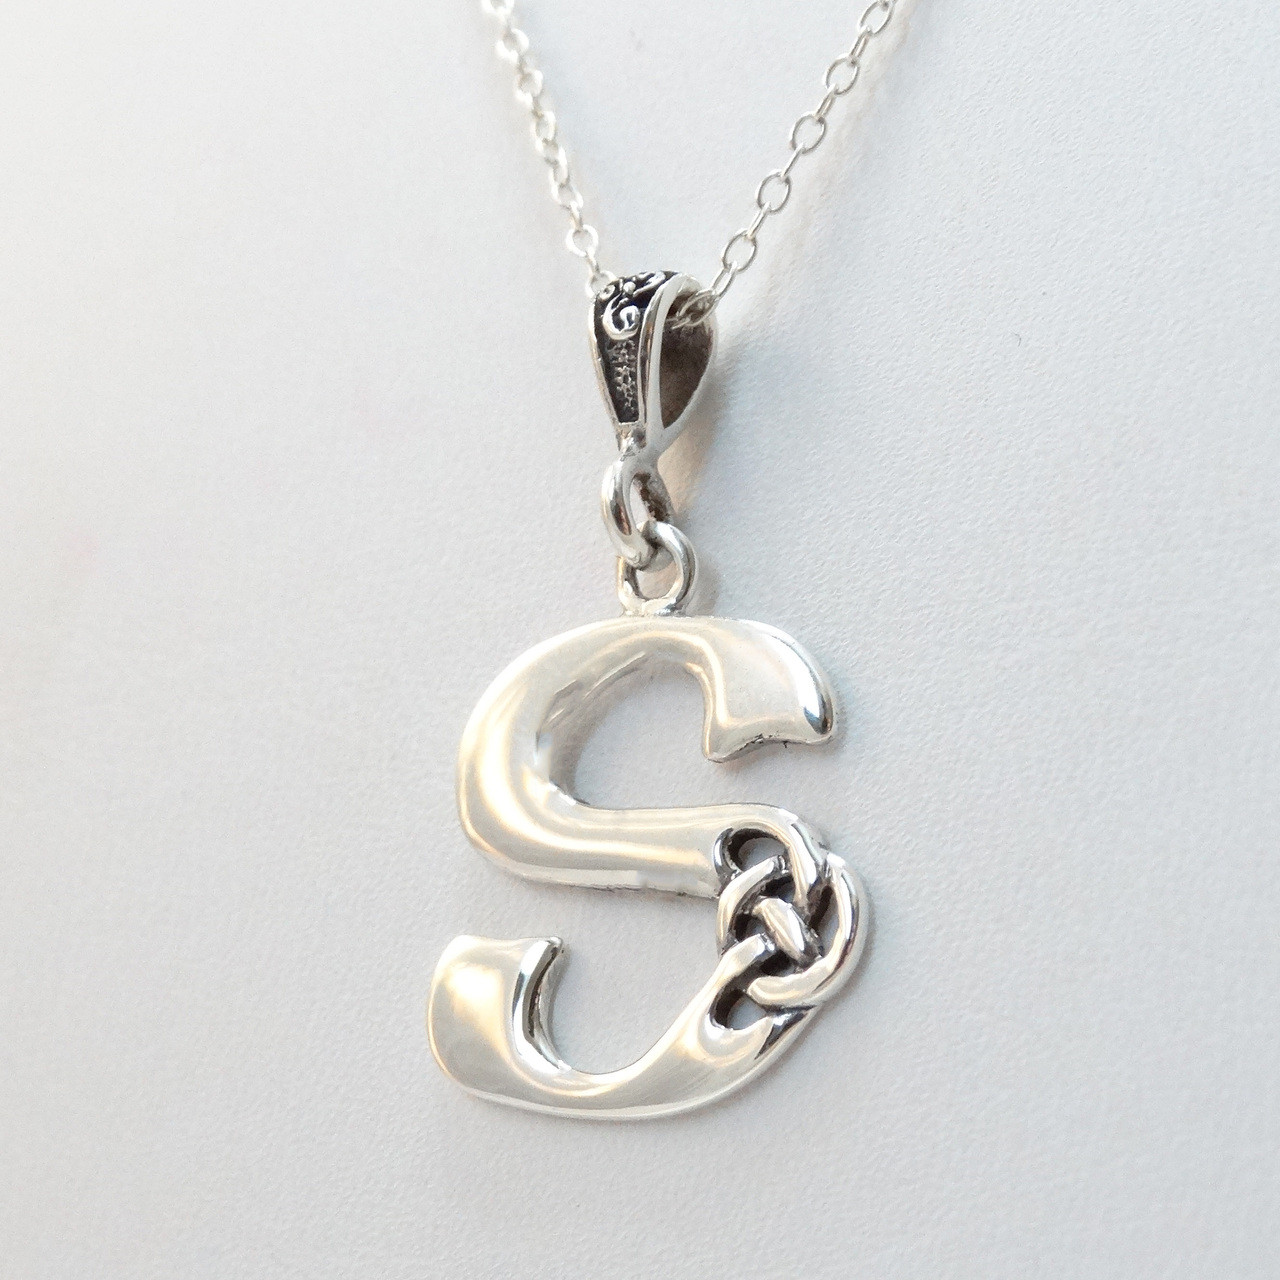 gold s letter pendant yg web chain products necklace vrai and p cuban oro yellow